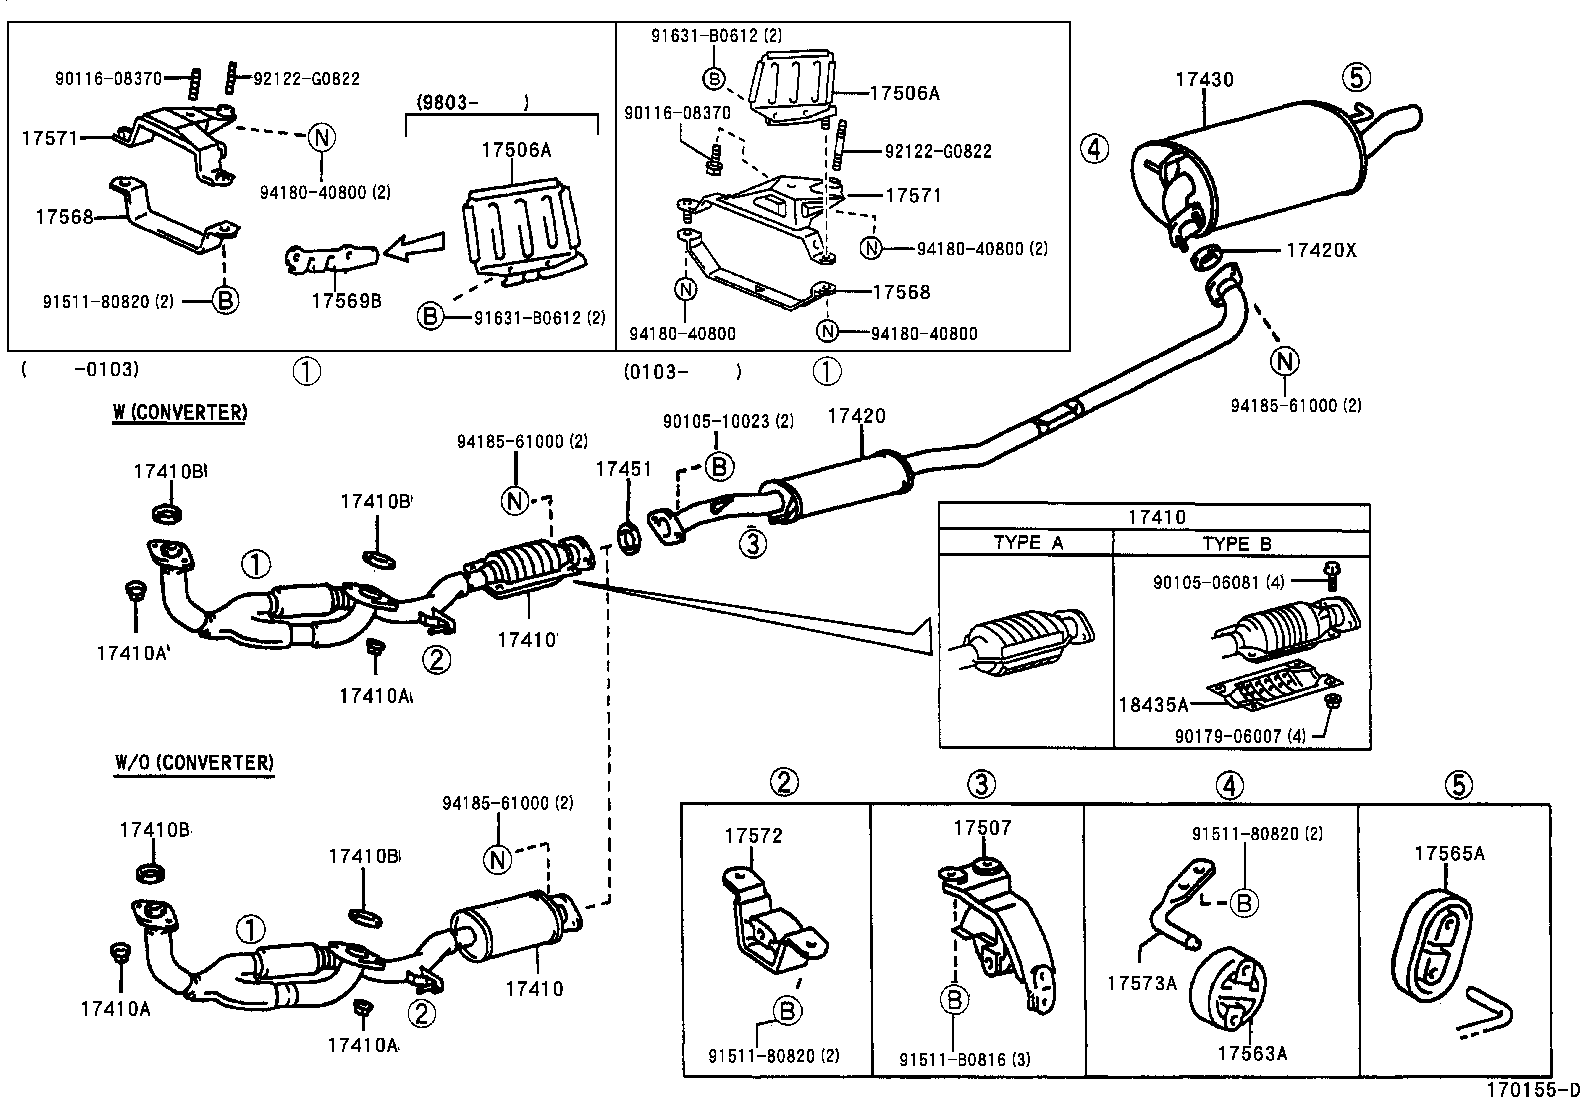 Toyota Corolla 1993 Toyota Corolla Egr Valve moreover 2007 Toyota Camry Exhaust System Diagram likewise 96 Corolla Engine Diagram also 94 Accord Exhaust Diagram likewise 2007 Toyota Camry Exhaust System Diagram. on toyota corolla questions diagram for a 1996 corollas